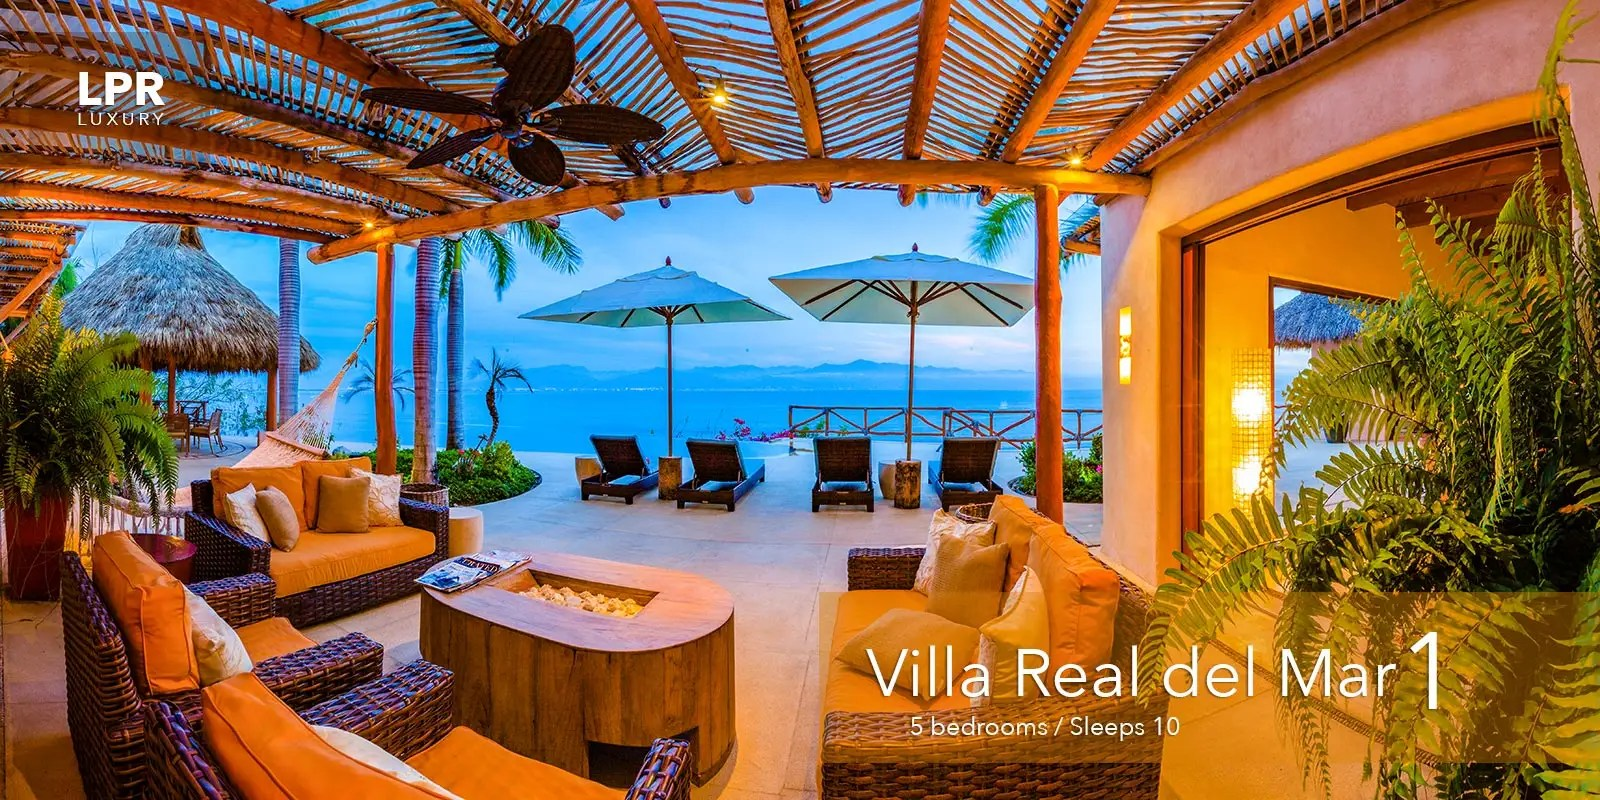 Best Kitchen Gallery: Villa Real Del Mar 1 Luxury Punta De Mita Real Estate And Vacation of Luxury Villa Rentals Mexico  on rachelxblog.com